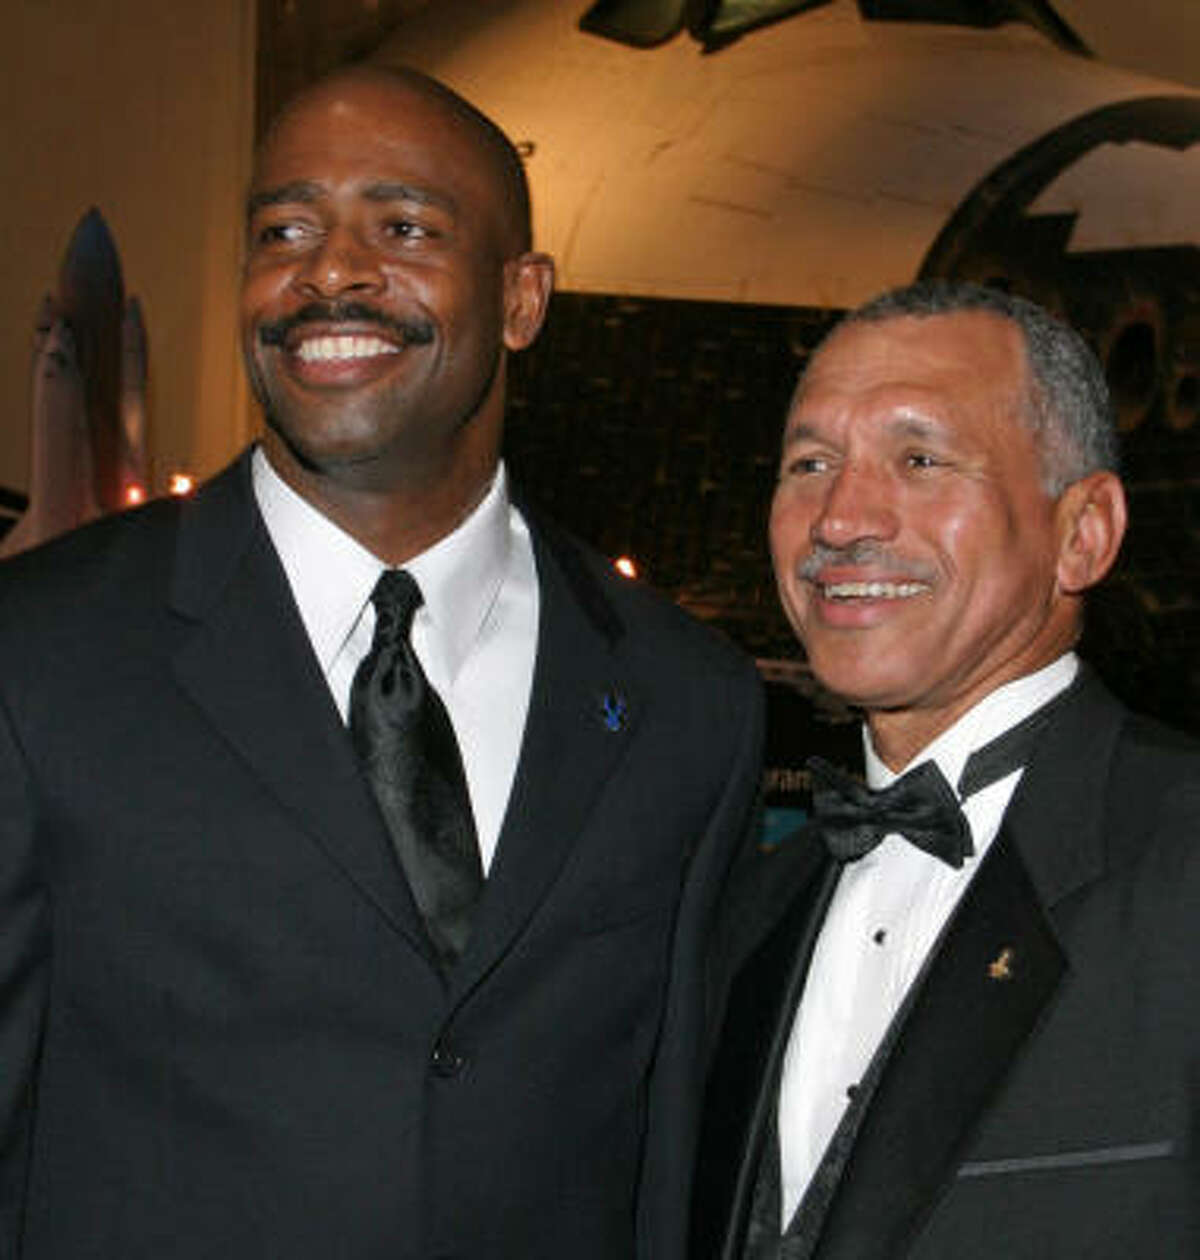 Charles F. Bolden Jr. (right) would be the first black official to head the agency.